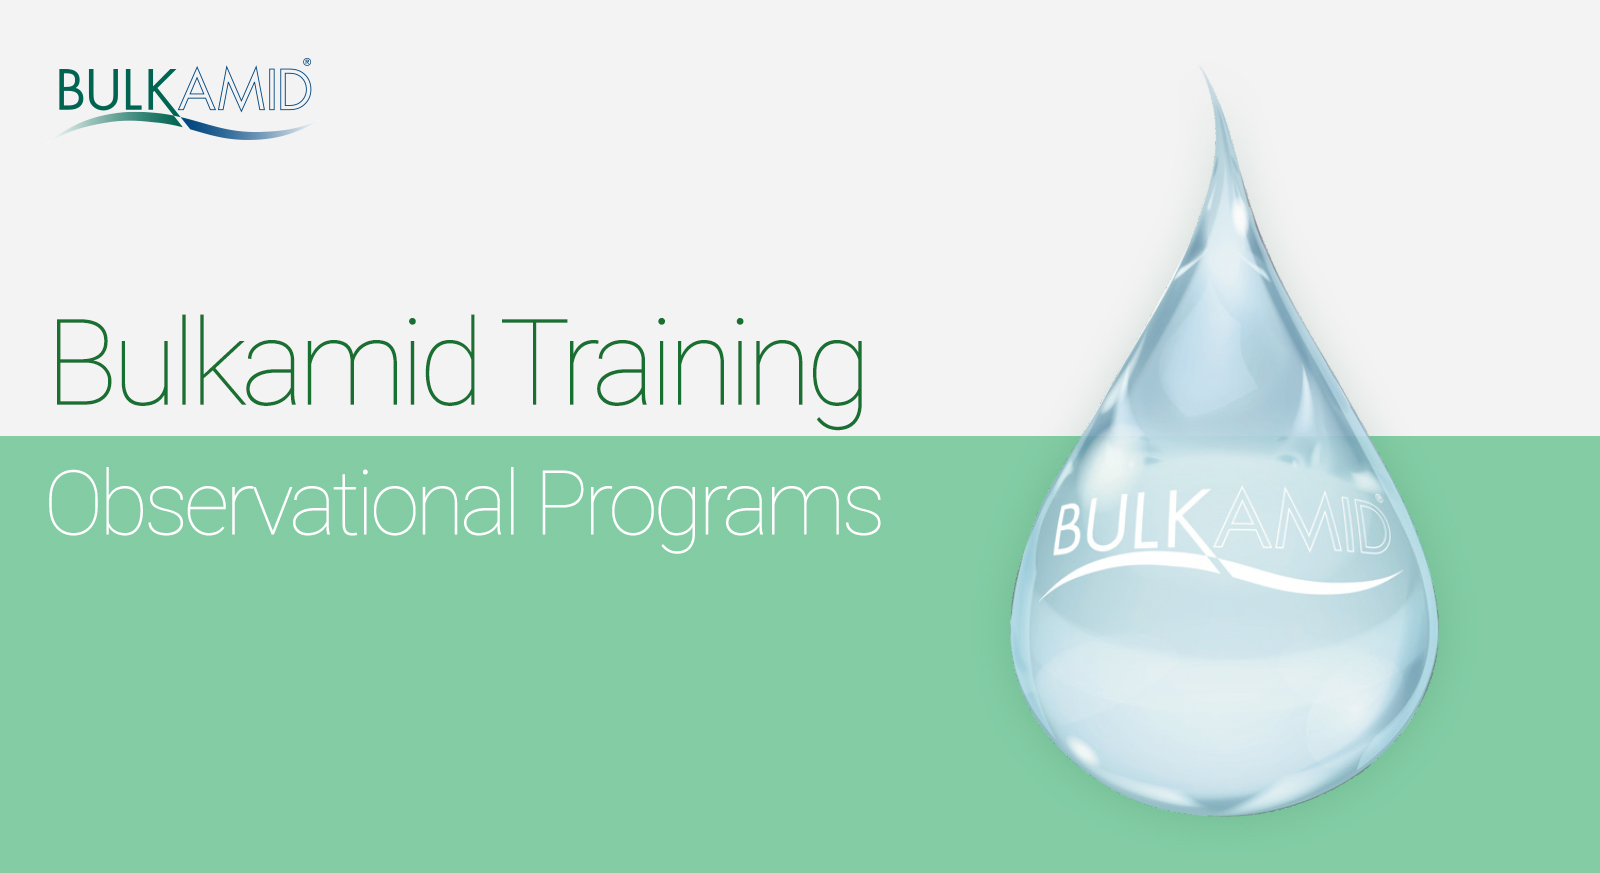 Bulkamid Online Observational Training Programs